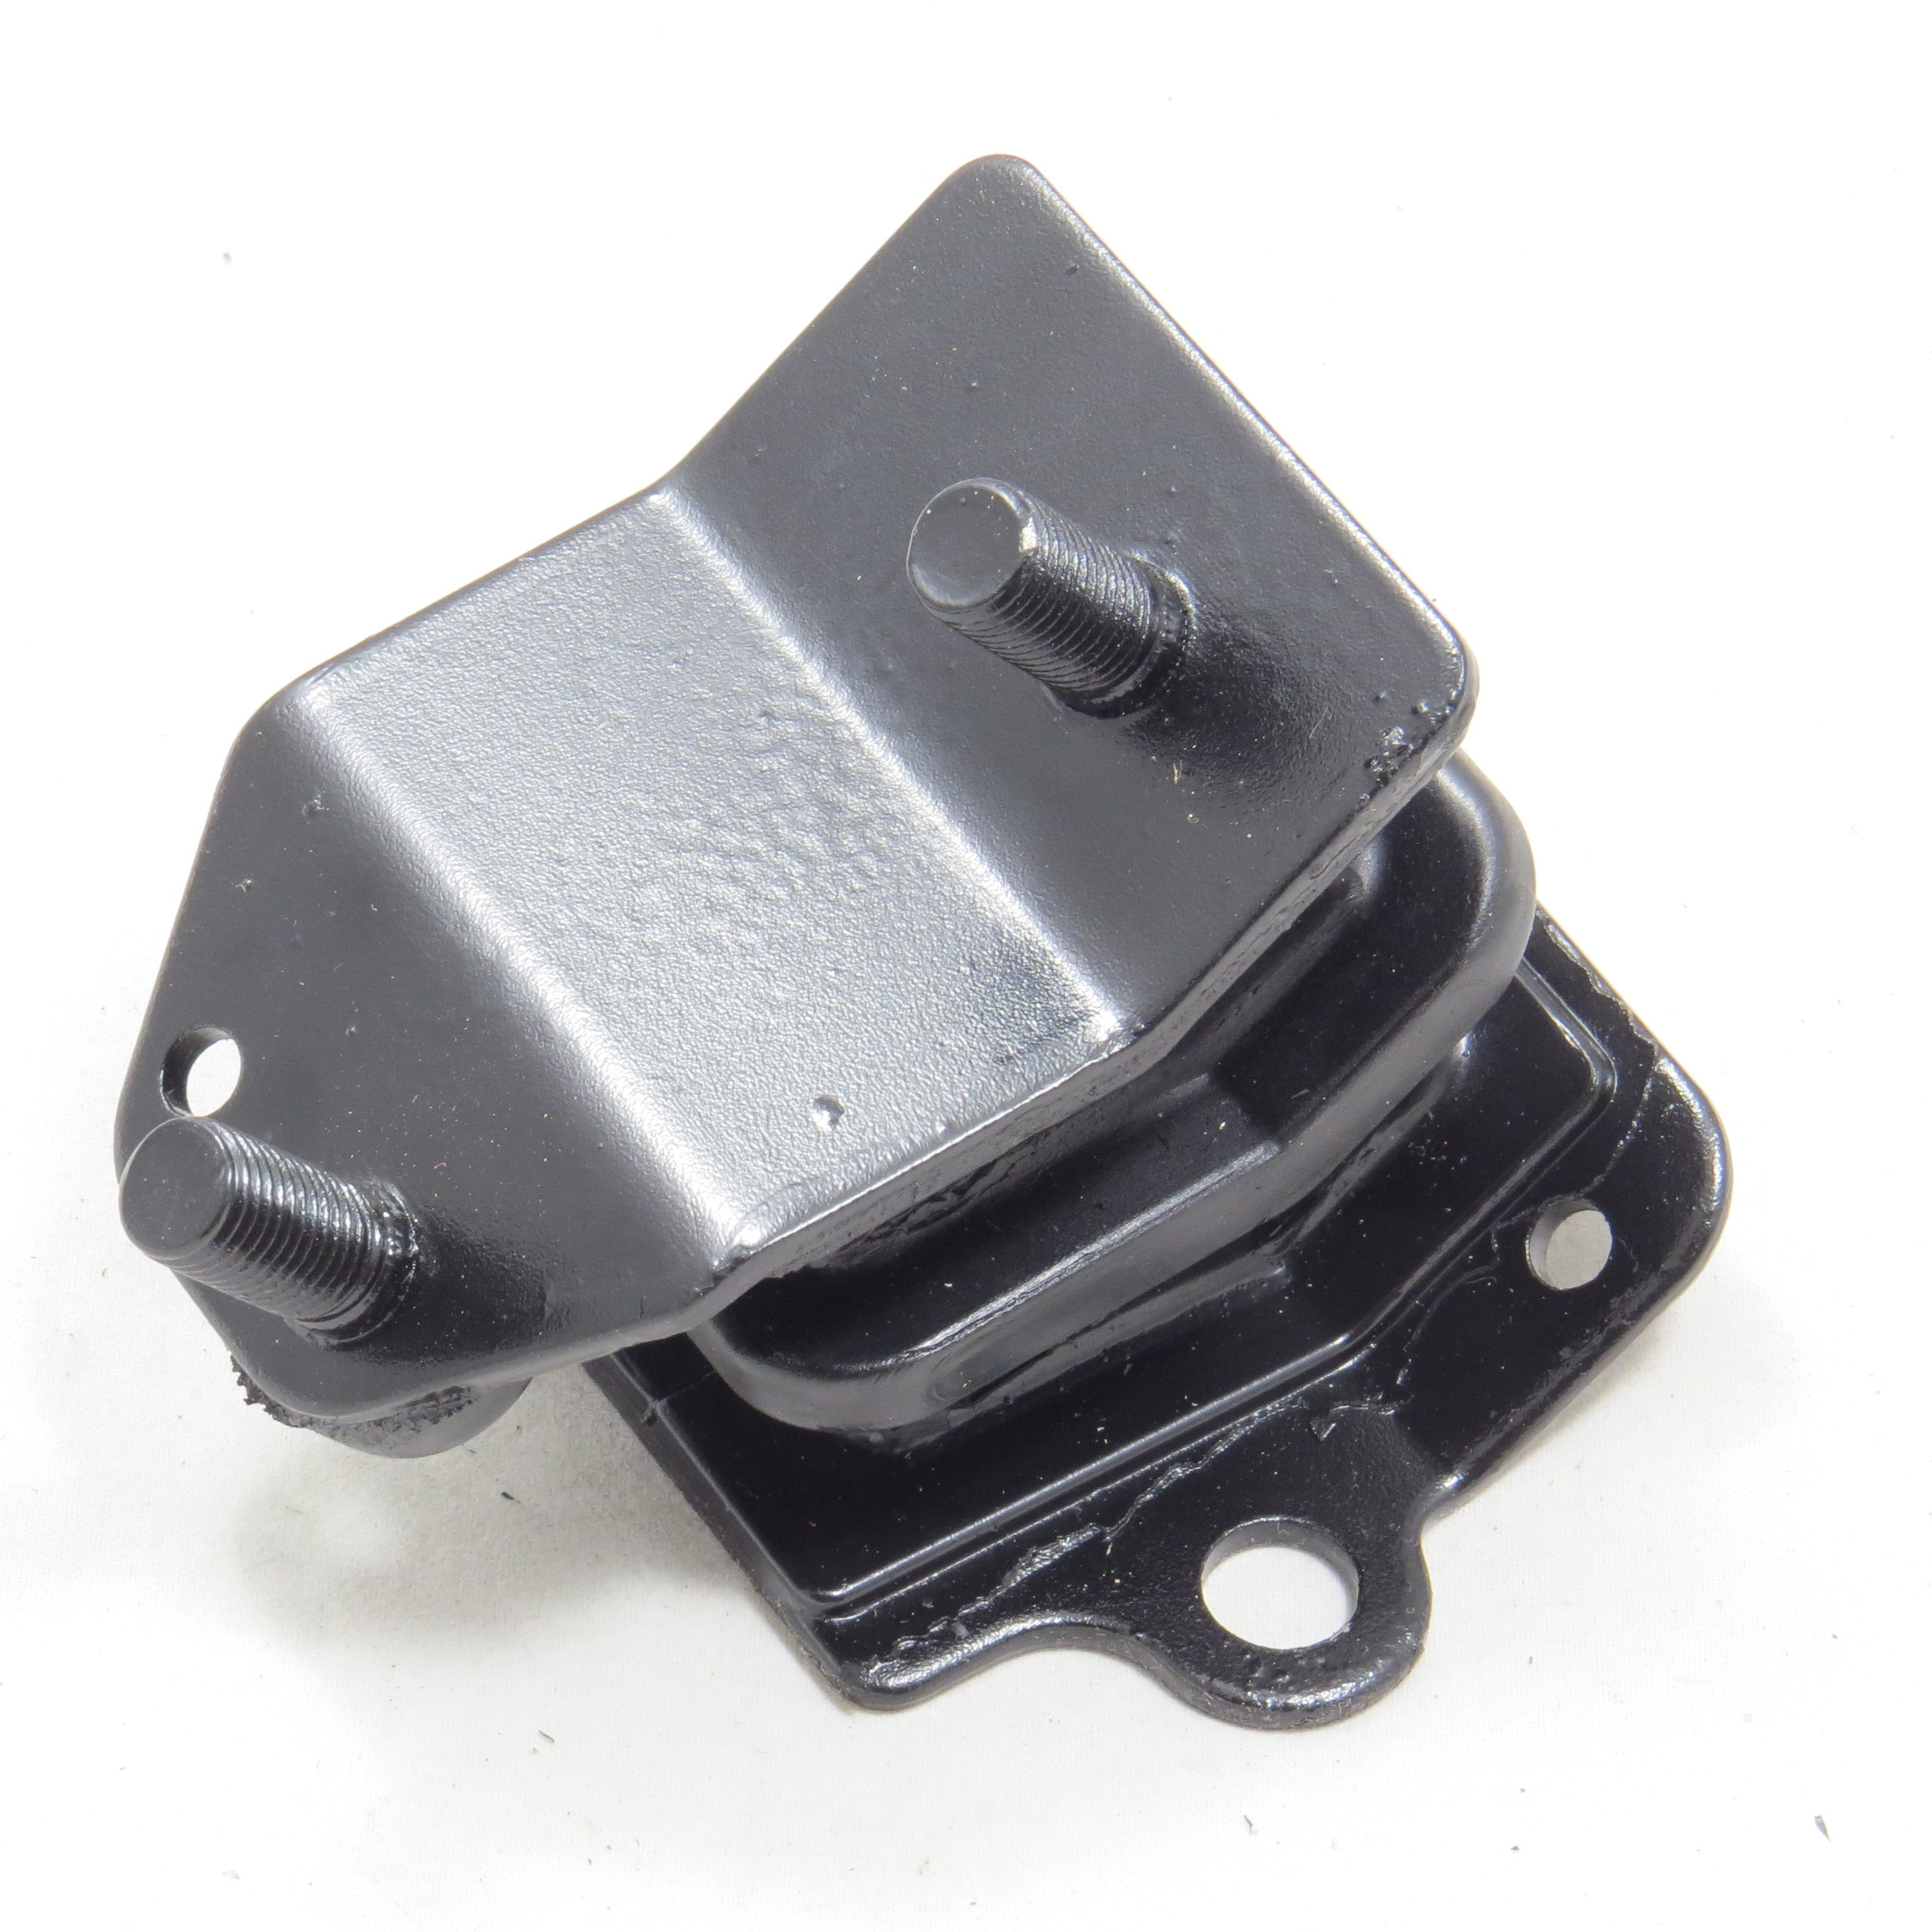 Rear Transmission Mount For 04-06 Acura TL